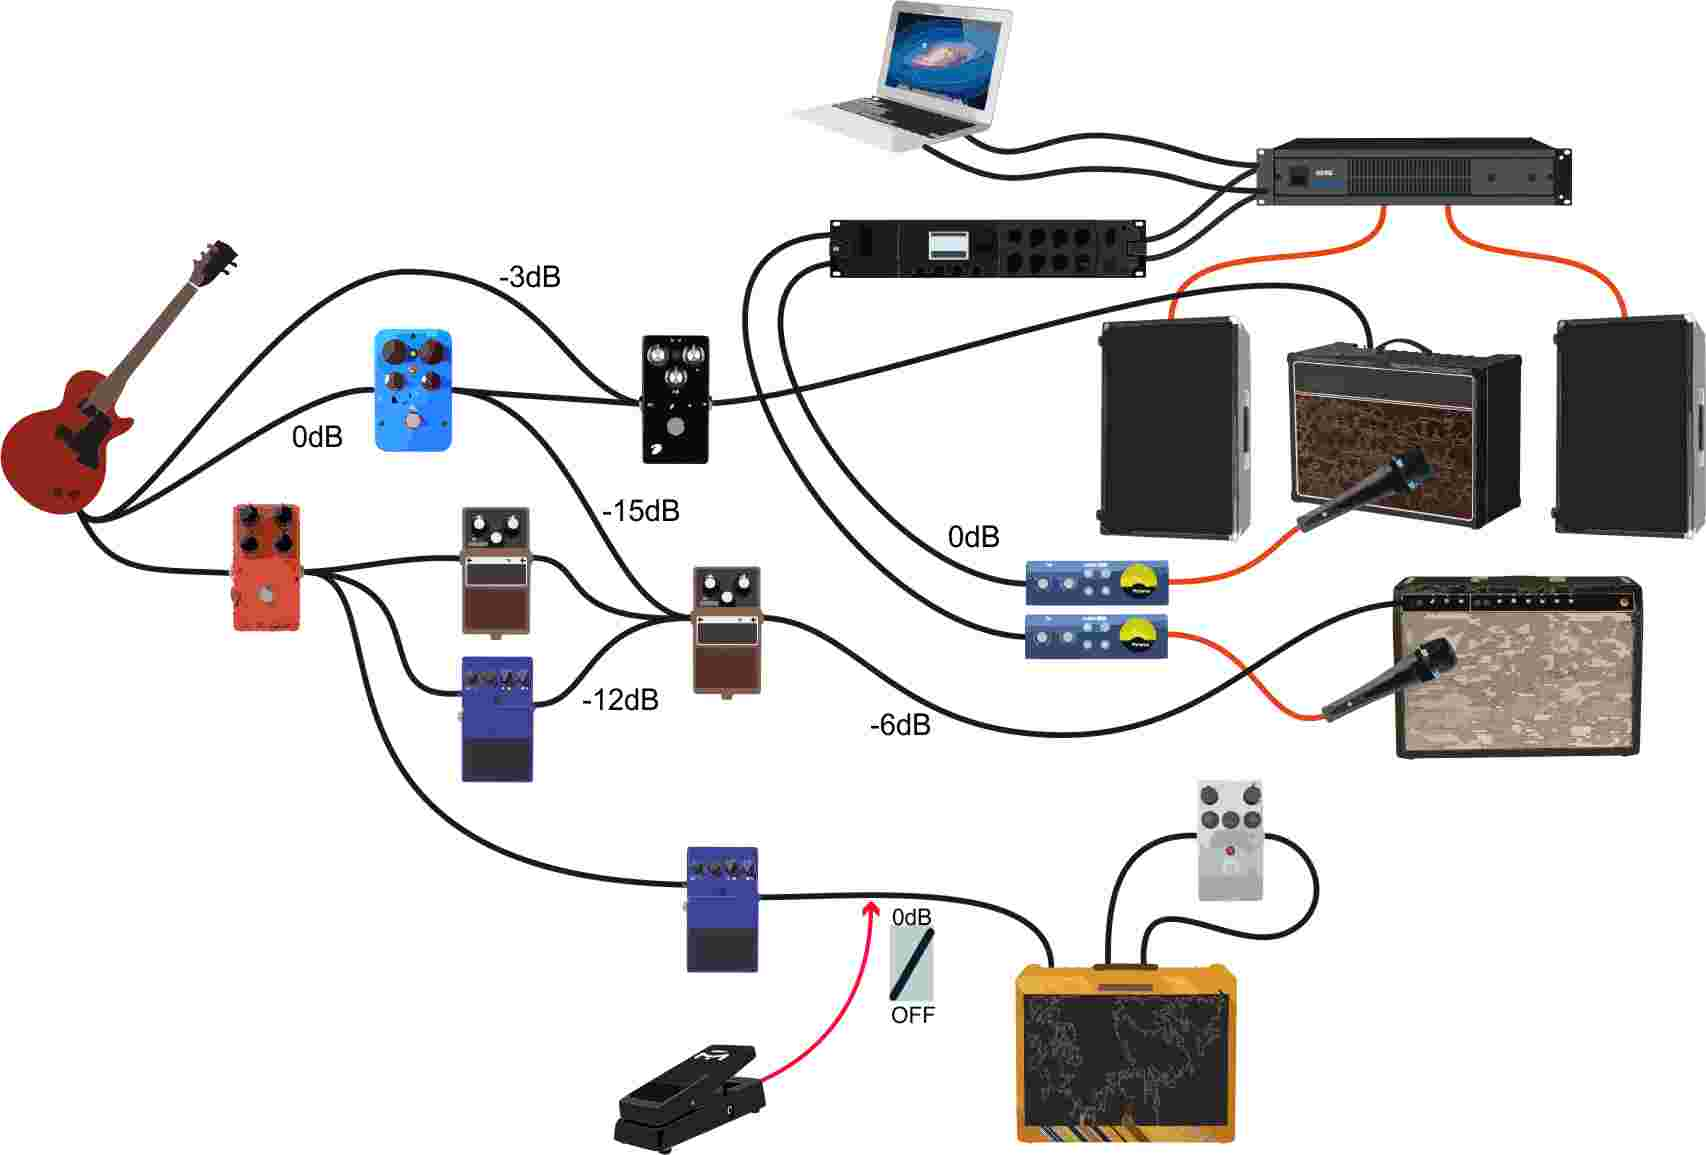 simple 3 way switch wiring diagram speaker volume control switching system tutorial without the ultimate effect this would be nearly impossible with it and practical